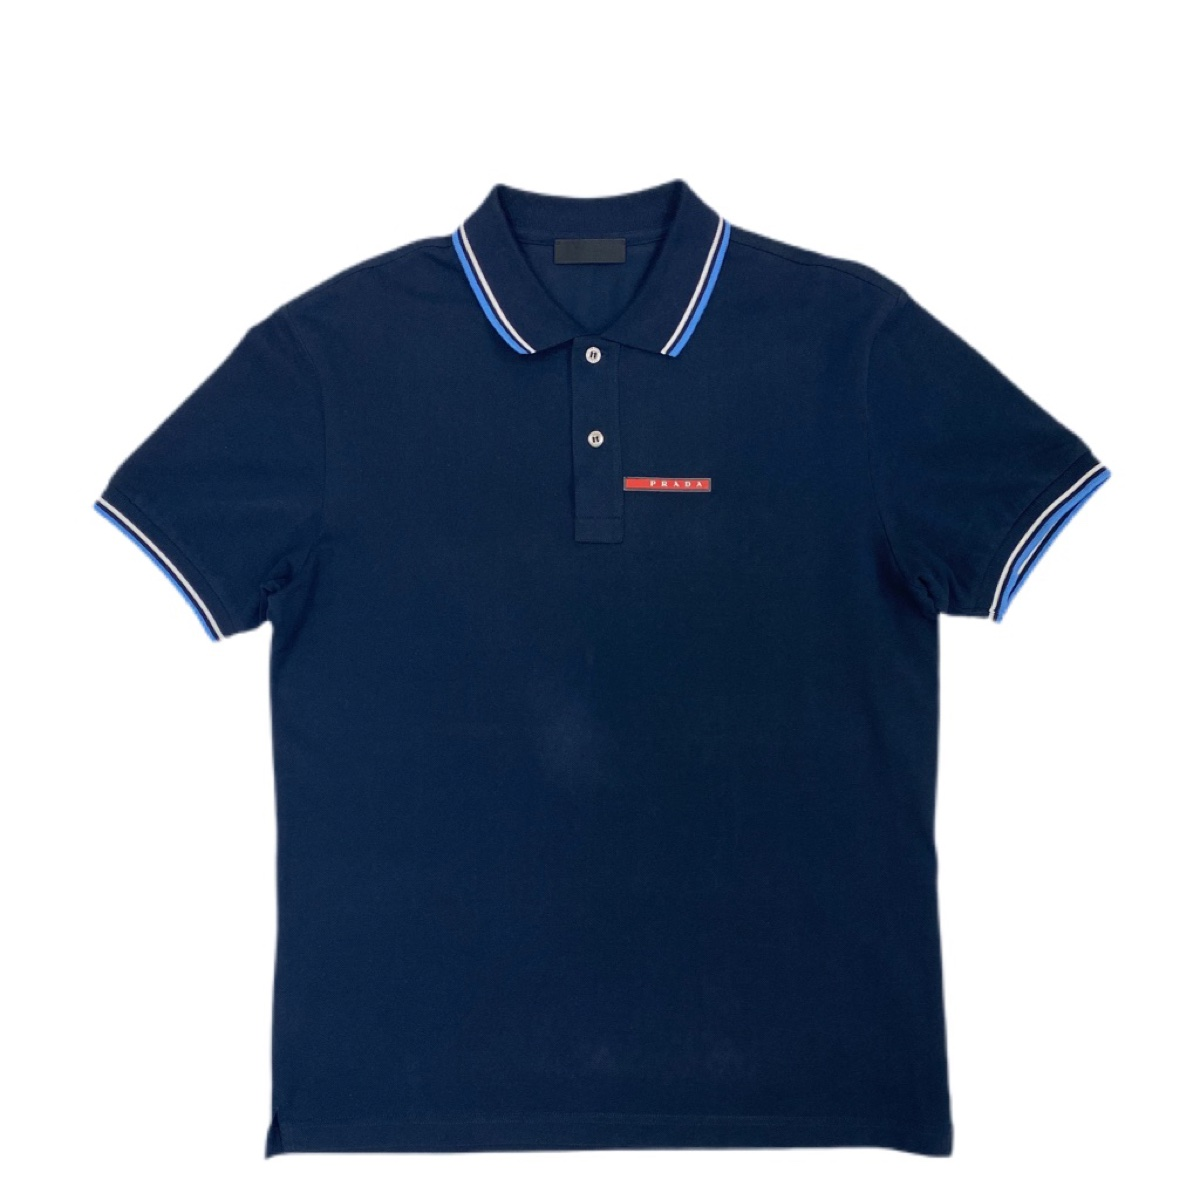 Prada navy polo